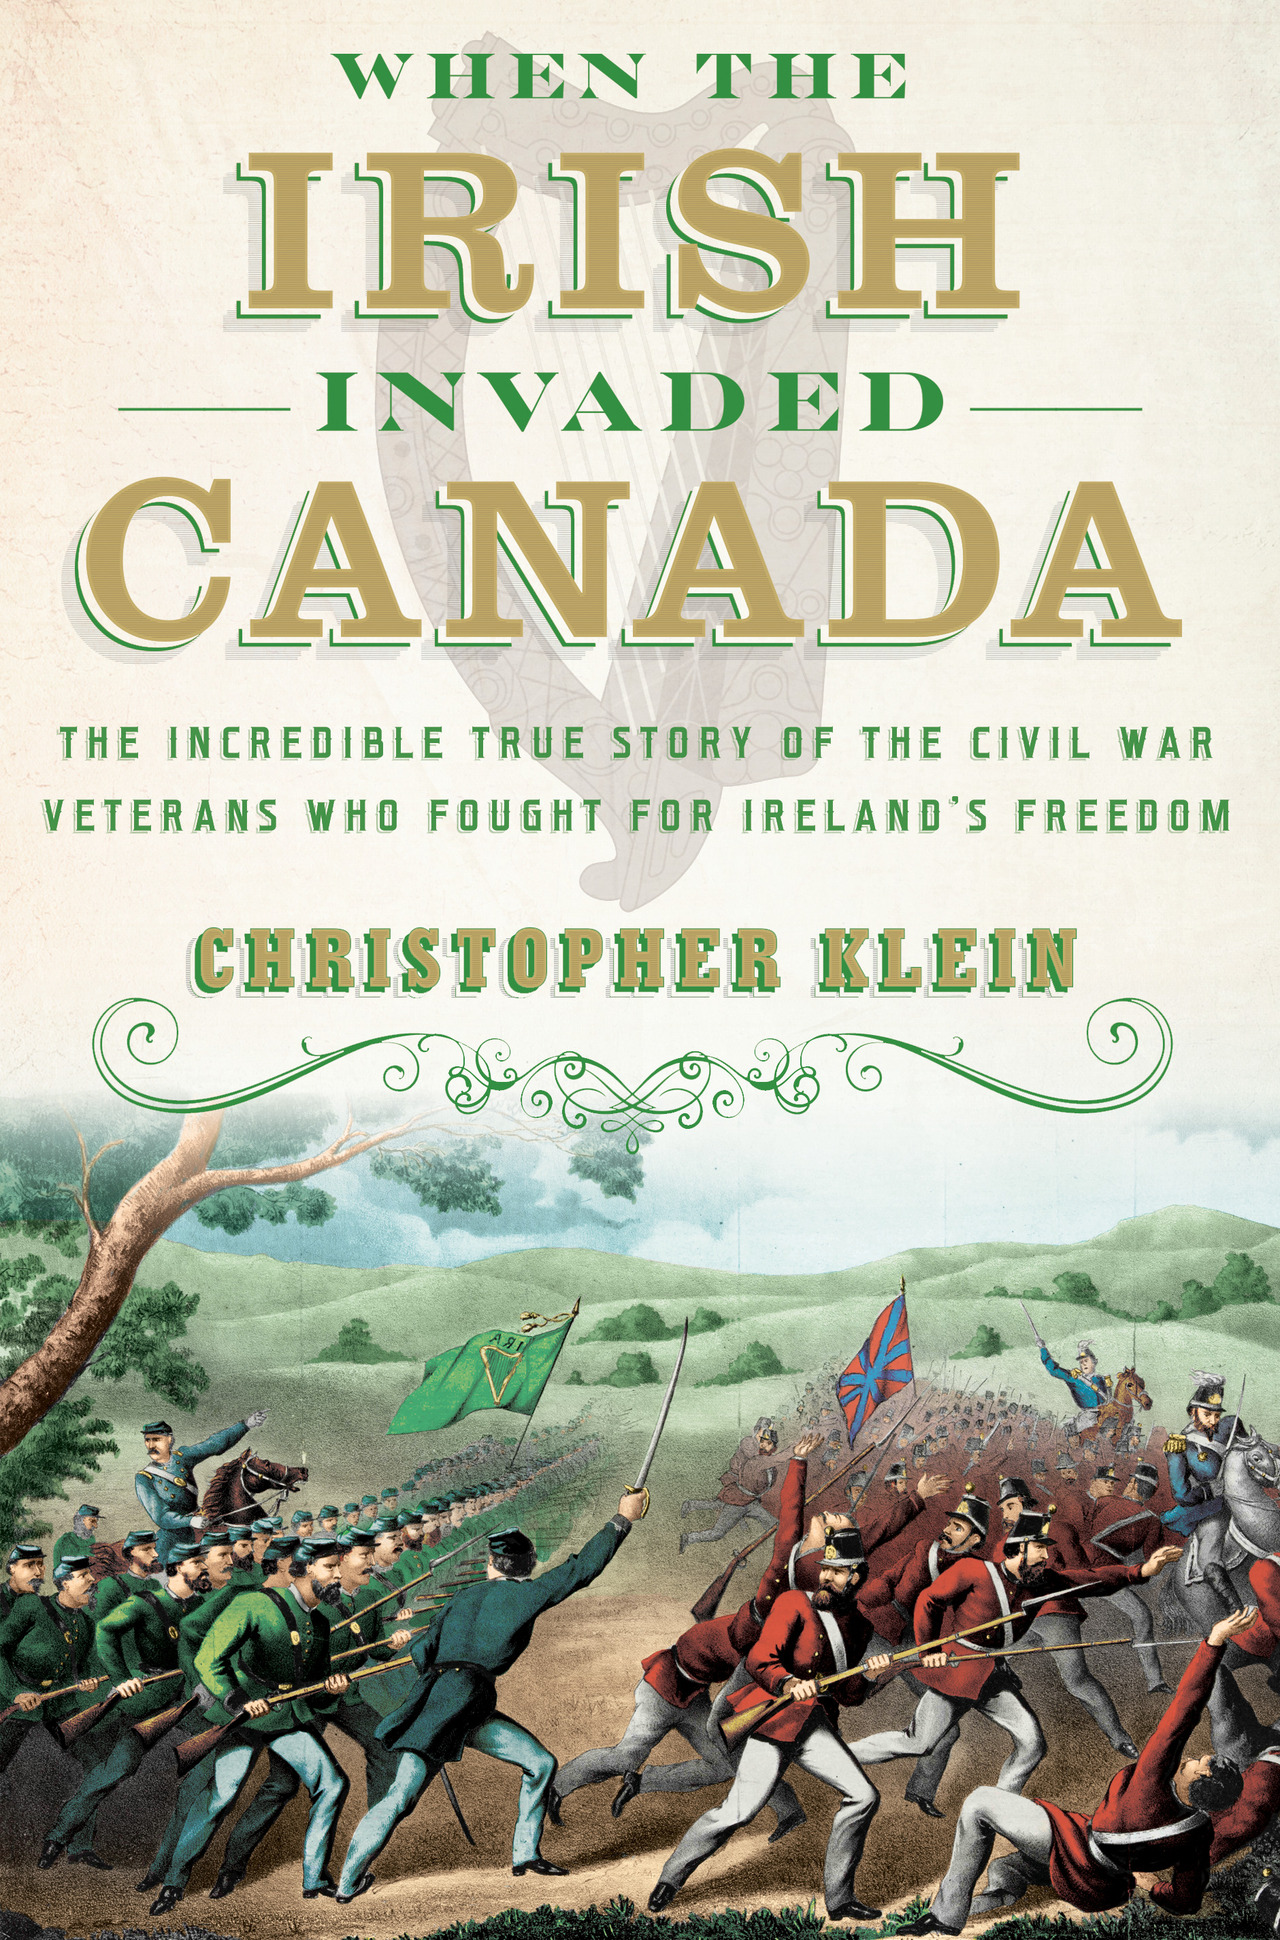 When the irish invaded canada cover